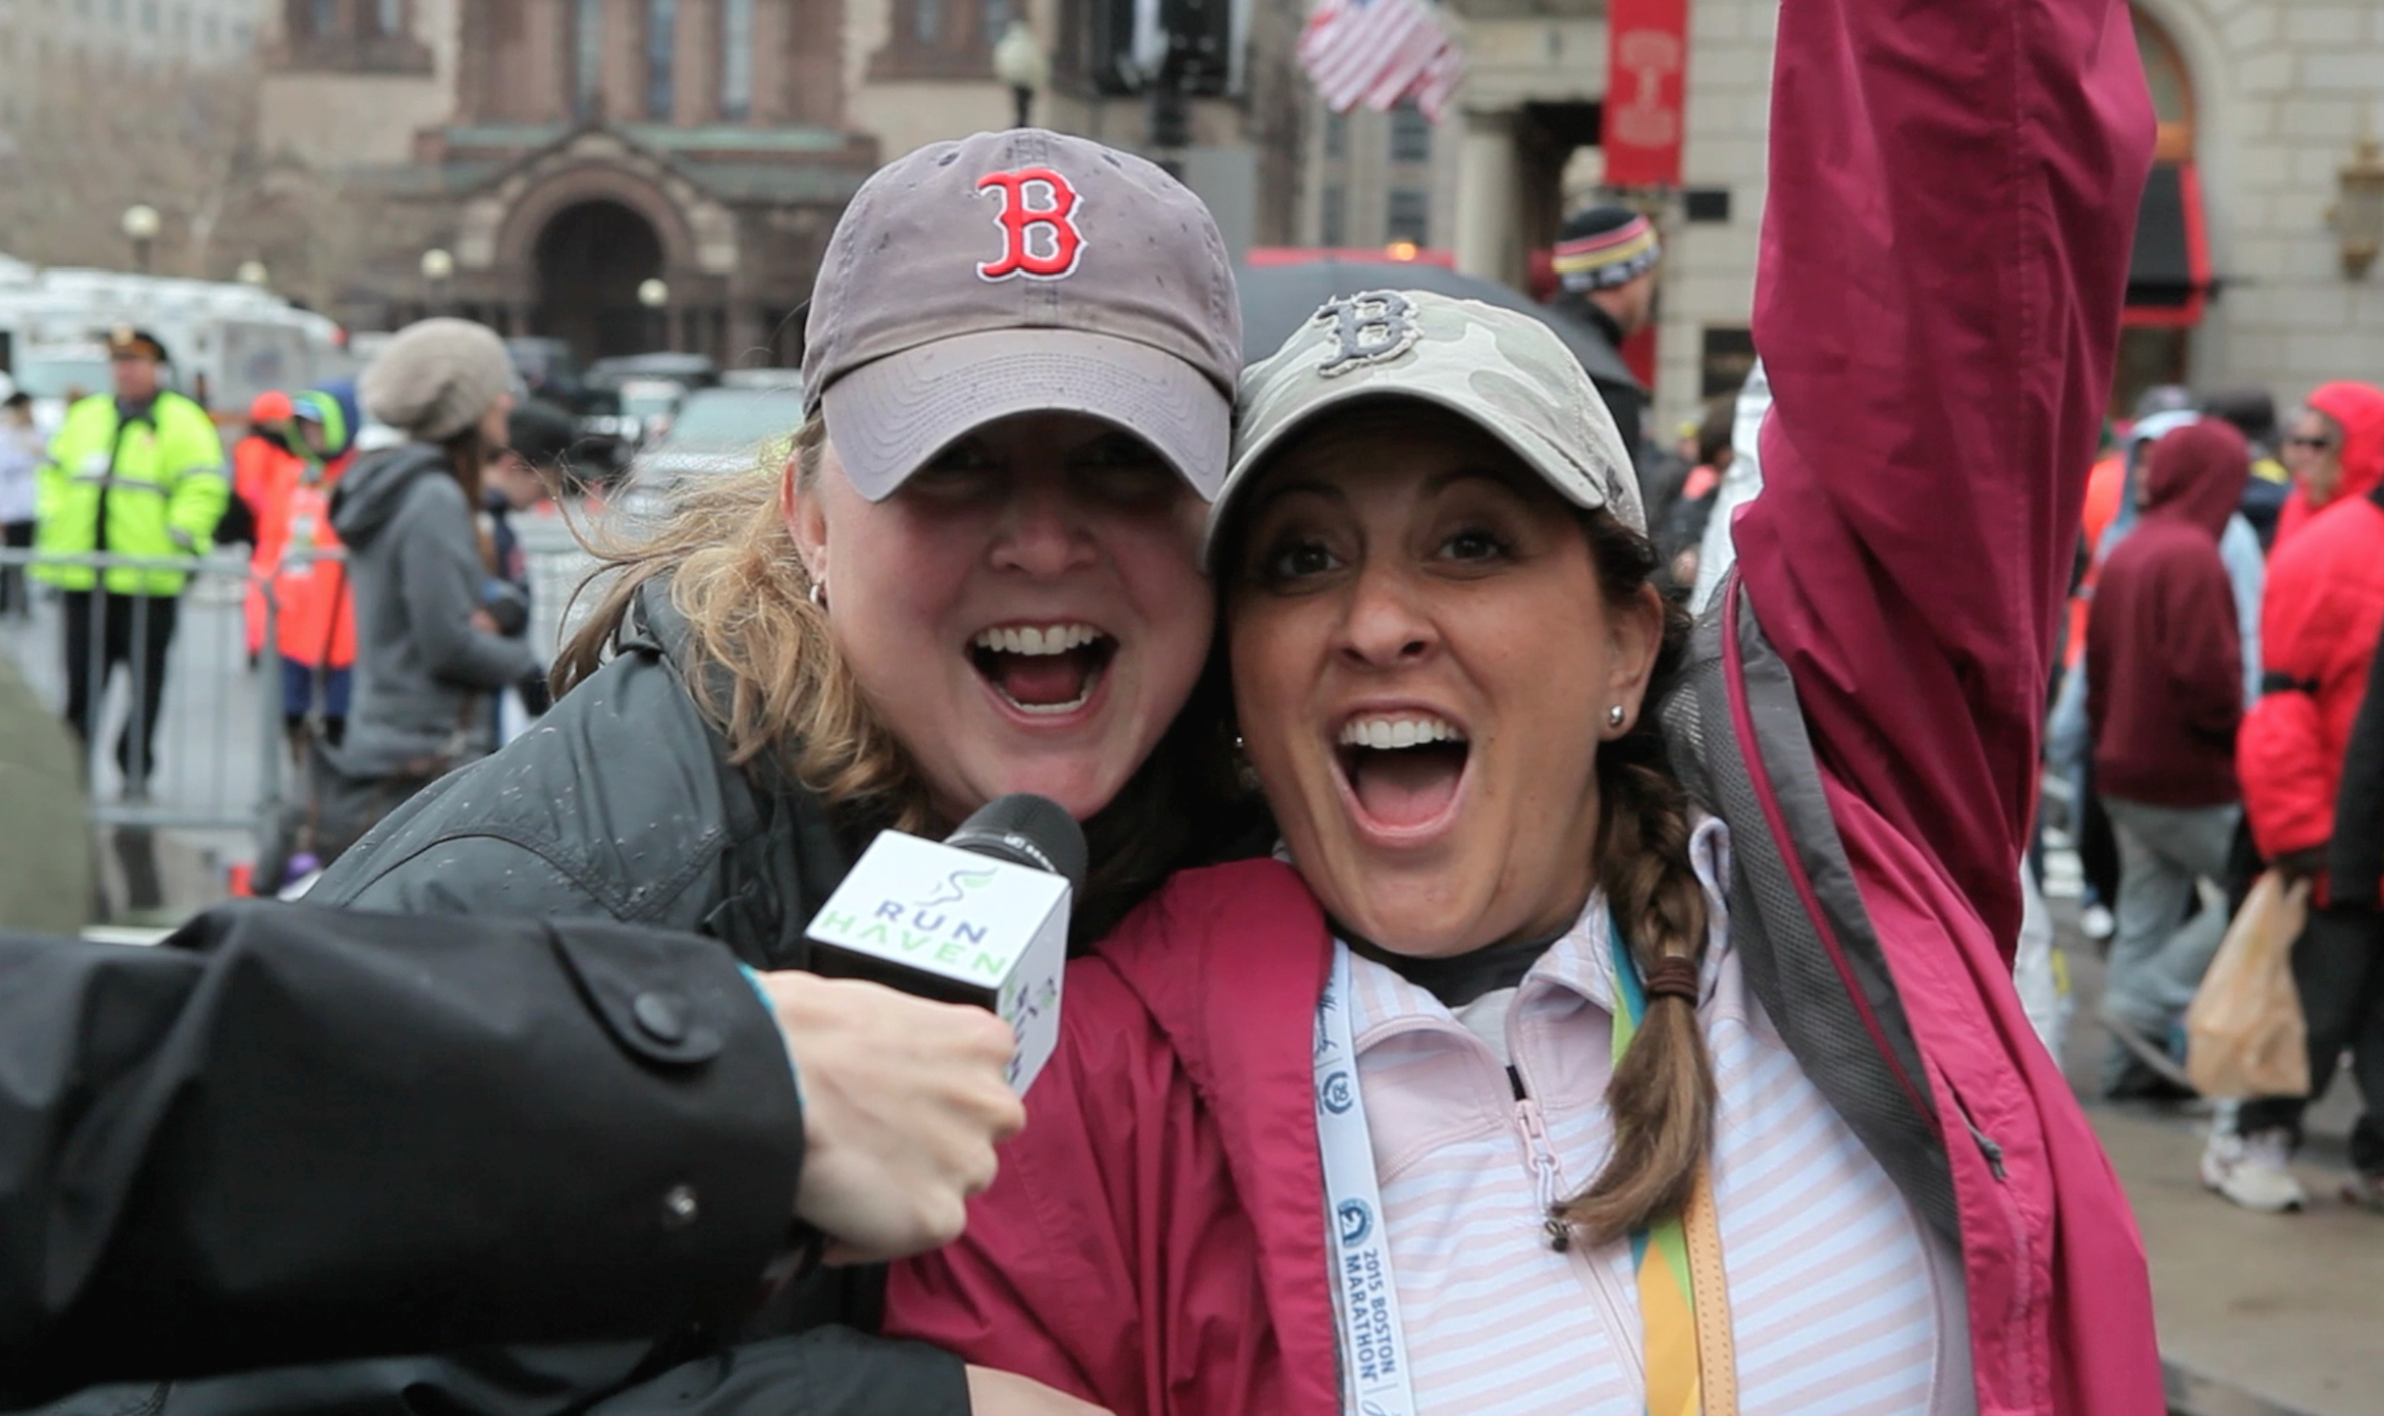 What does the Boston Marathon mean to you?